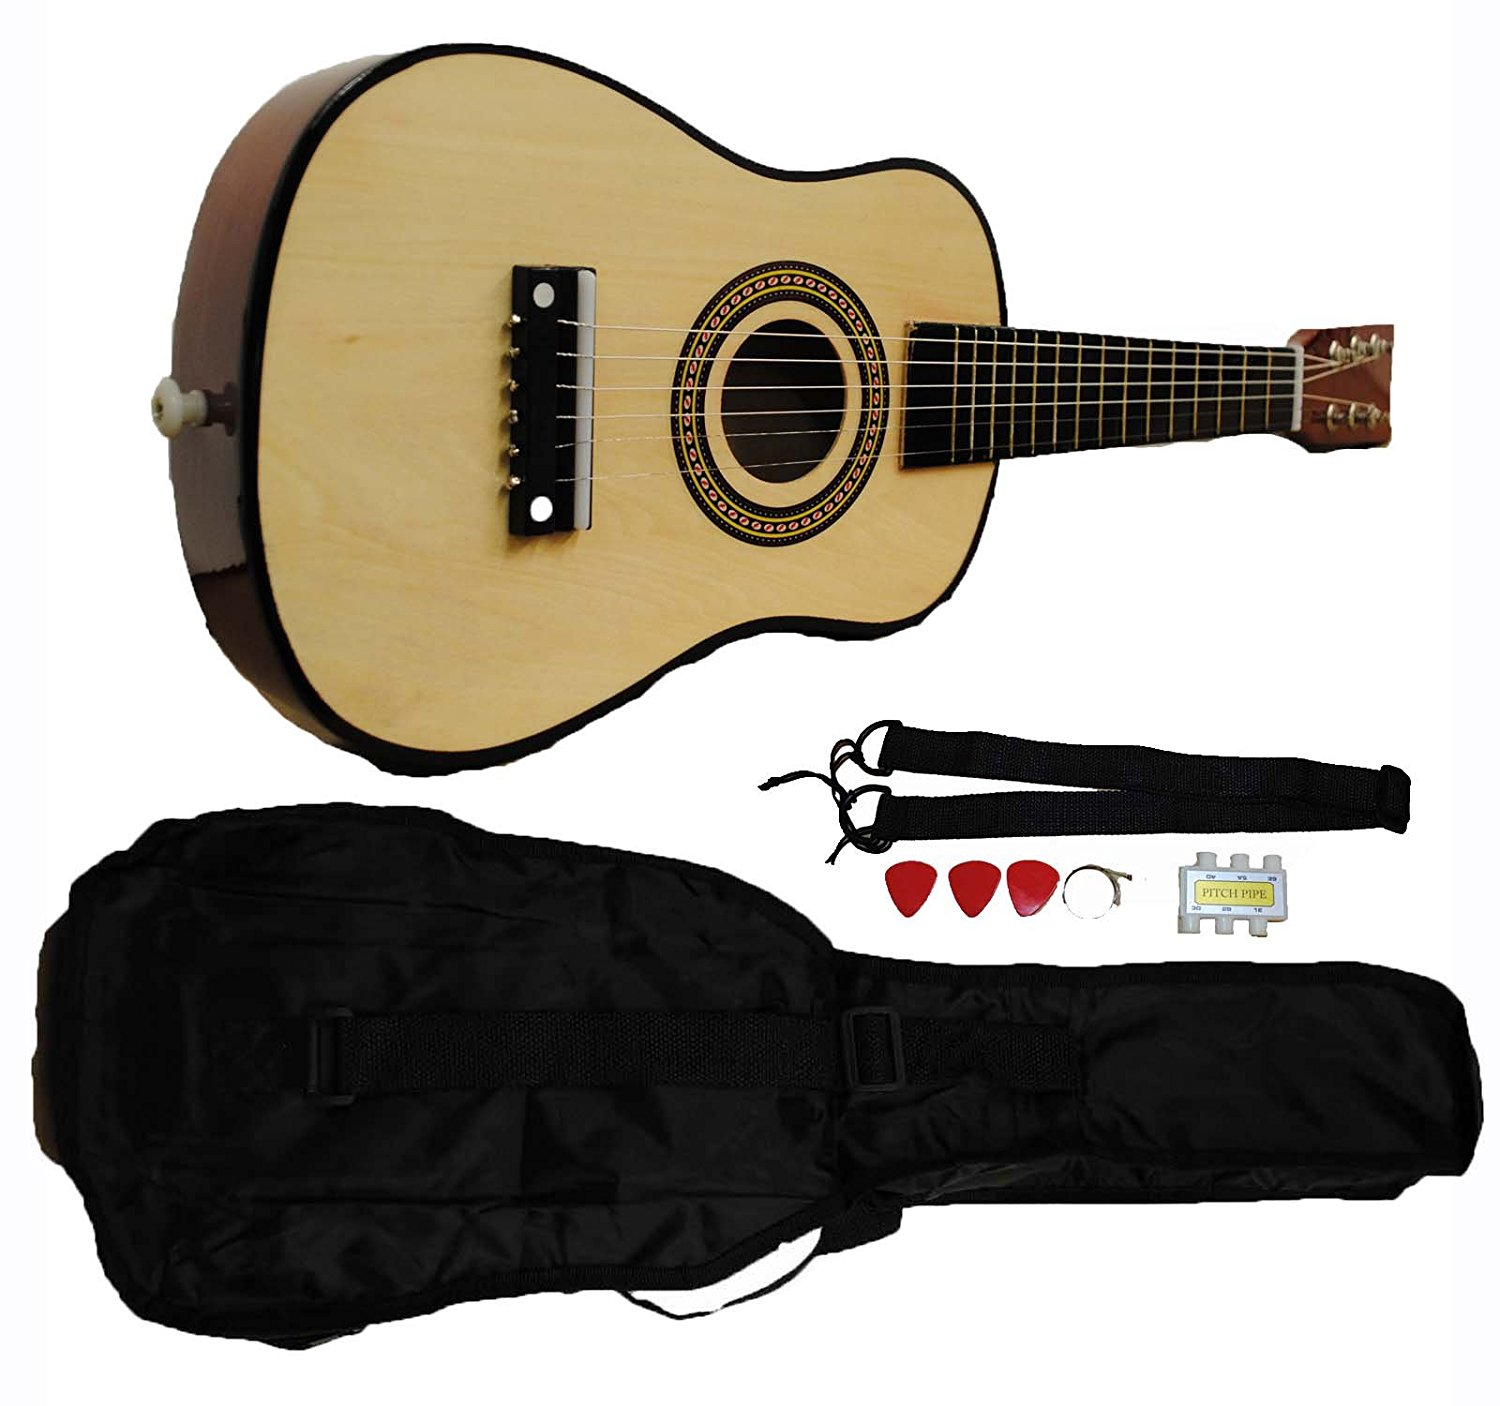 Mini Kids Acoustic Toy Guitar Kit Gig Bag + Picks + Strap + Tuner - Natural Wood